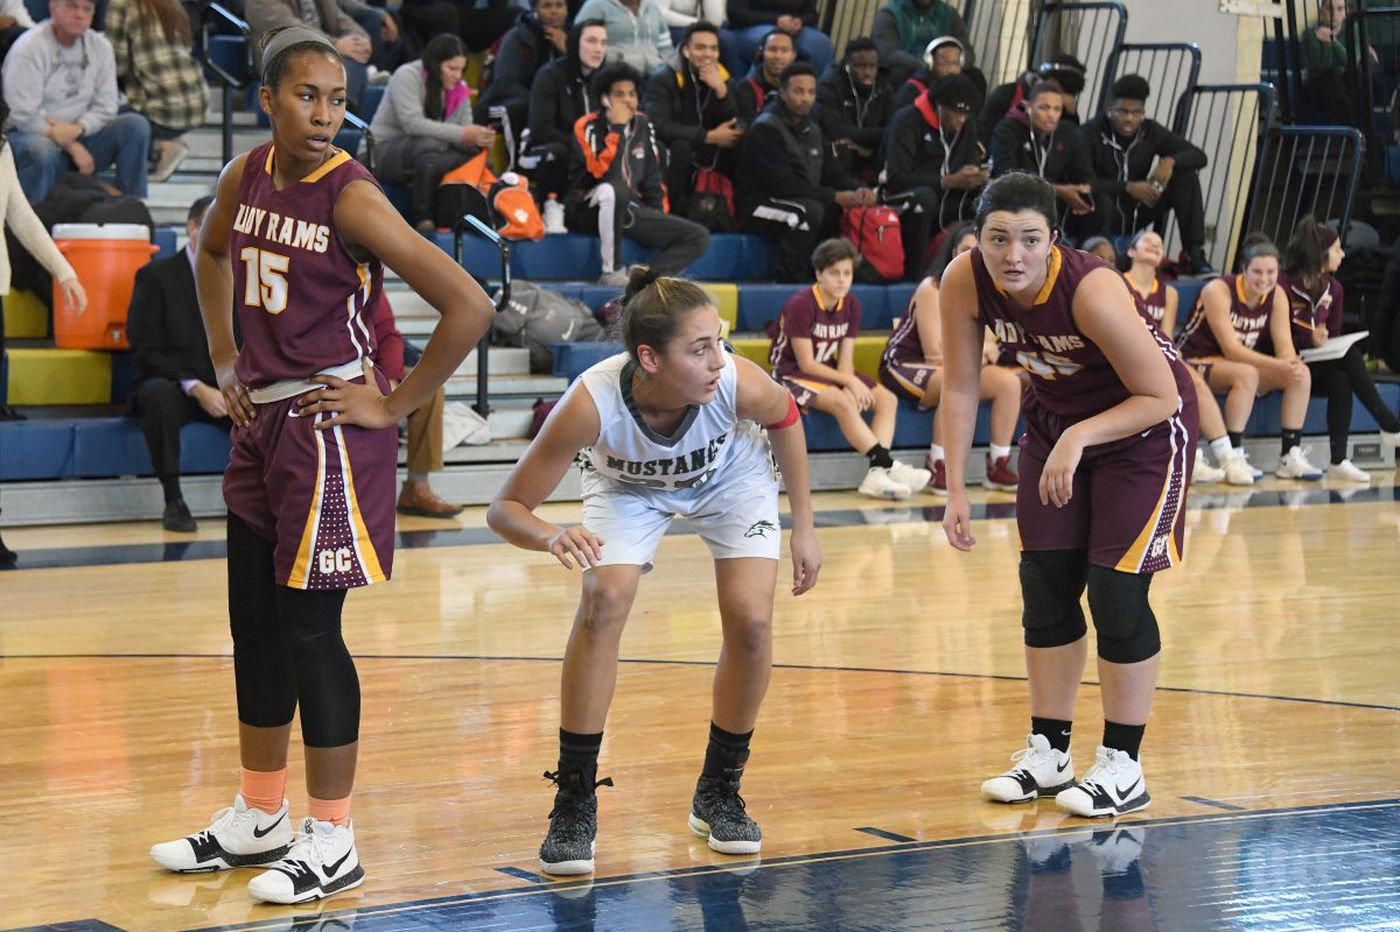 Kylee Watson plays hoops at Mainland for love of the game